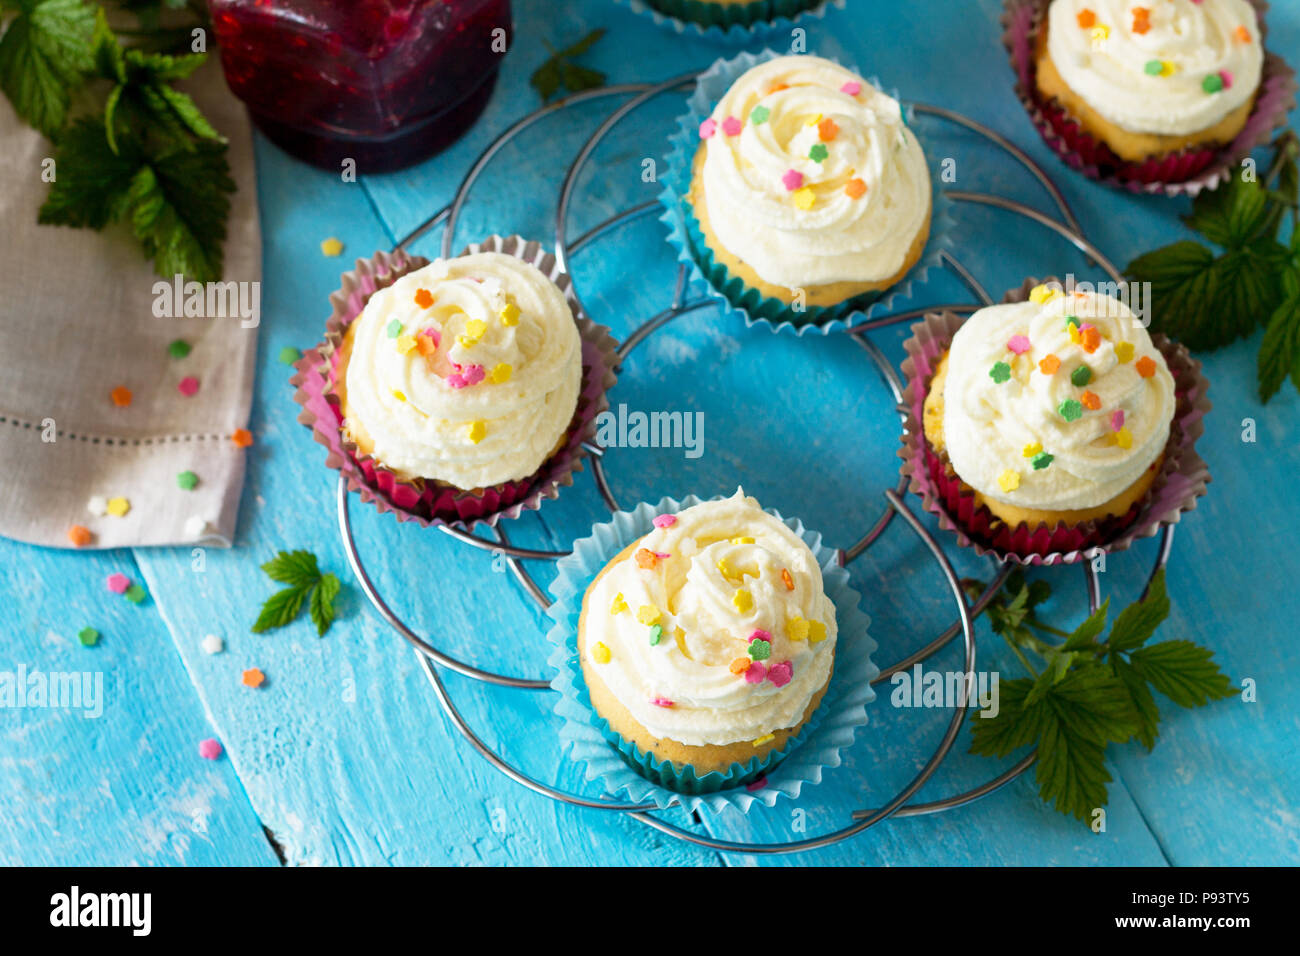 Birthday cupcake with buttercream icing and raspberry jam a wooden table. Copy space. - Stock Image